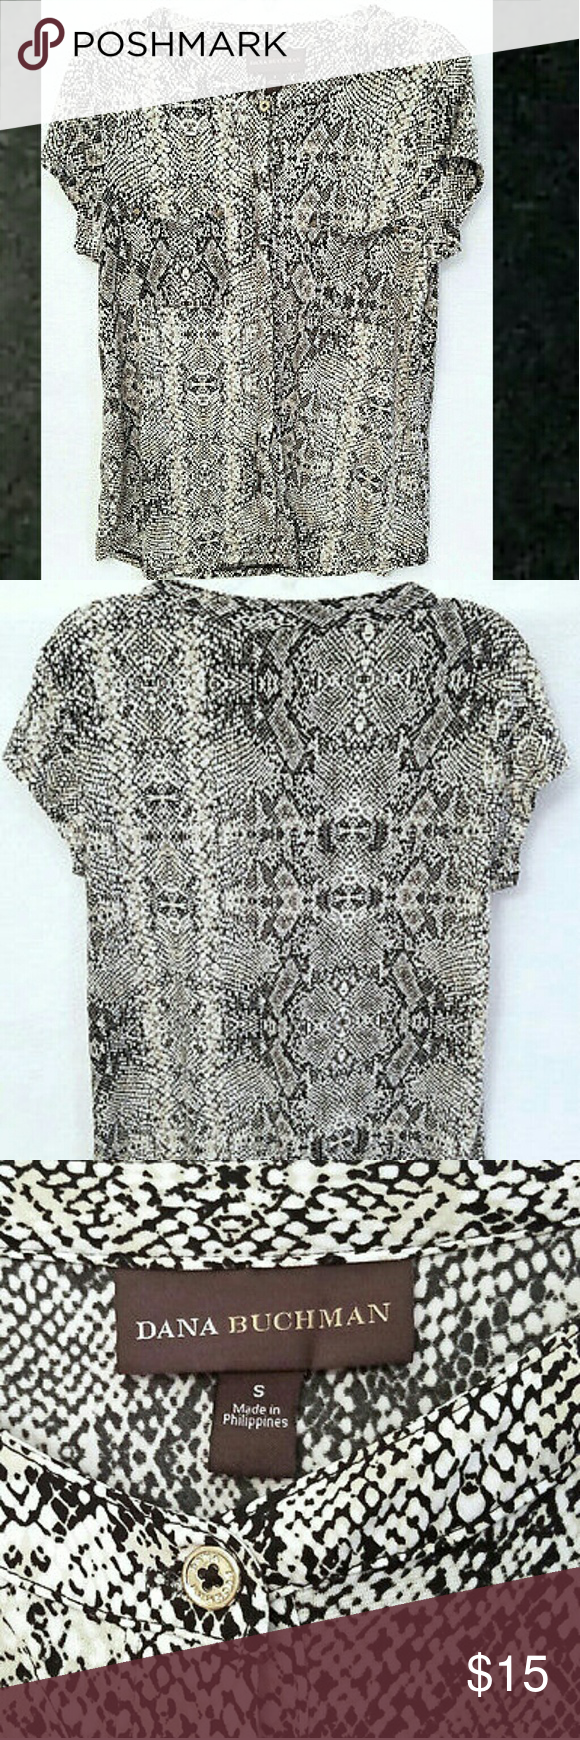 "Dana Buchman Black White Snake Print Made by Dana Buchman 95% polyester, 5% spandex Machine wash, hang dry  Buttons down the front 2 chest pockets Cap sleeve  Measurements are approximate      Length 25""     Chest 36""  (Inv 3-601) Dana Buchman Tops Blouses"